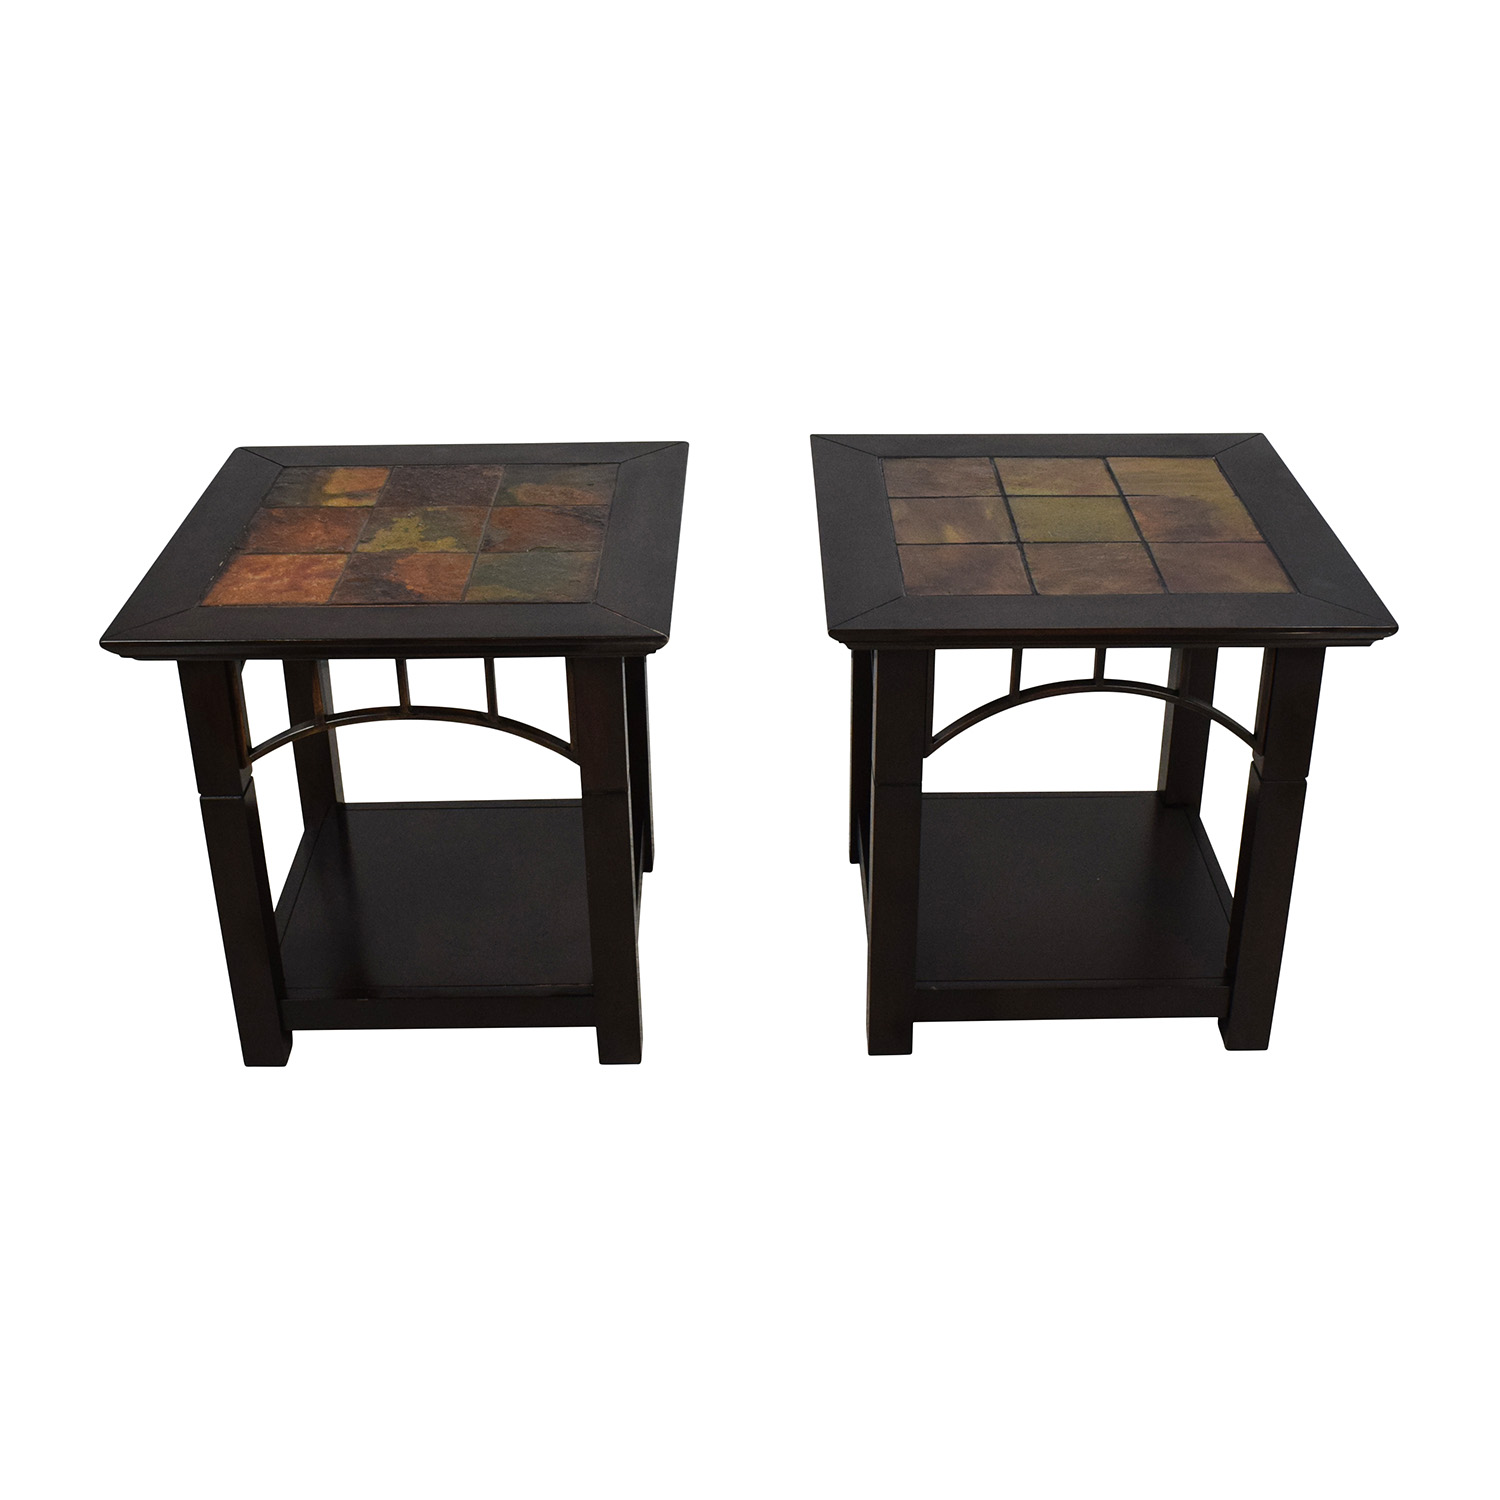 End Table Pair with Tiled Tops Tables